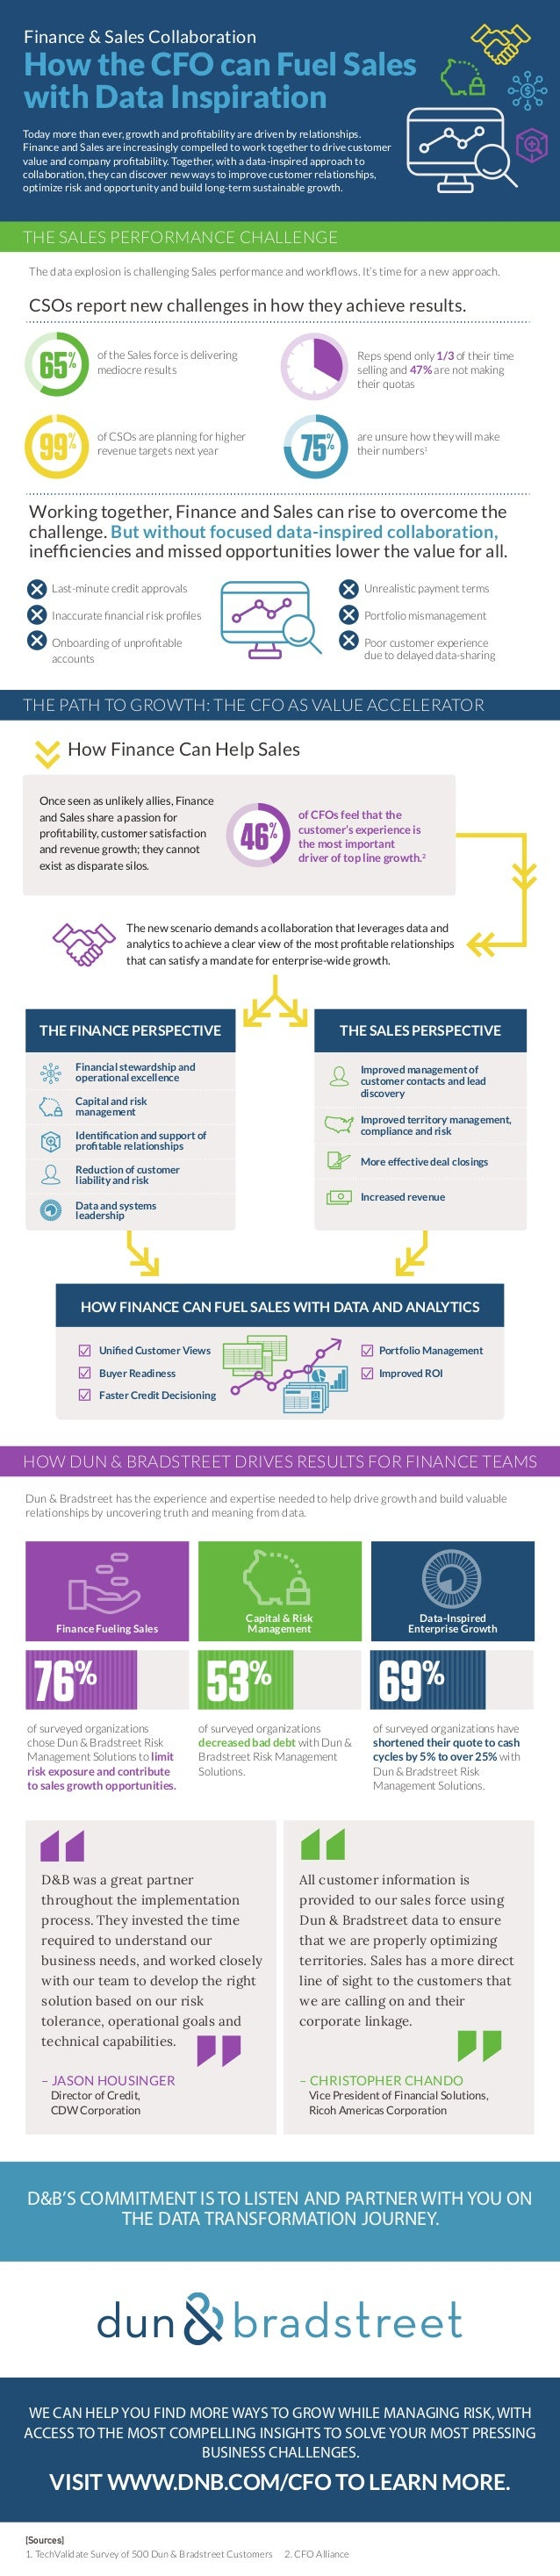 Finance & Sales Collaboration THE SALES PERFORMANCE CHALLENGE How the CFO can Fuel Sales with Data Inspiration THE PATH TO...